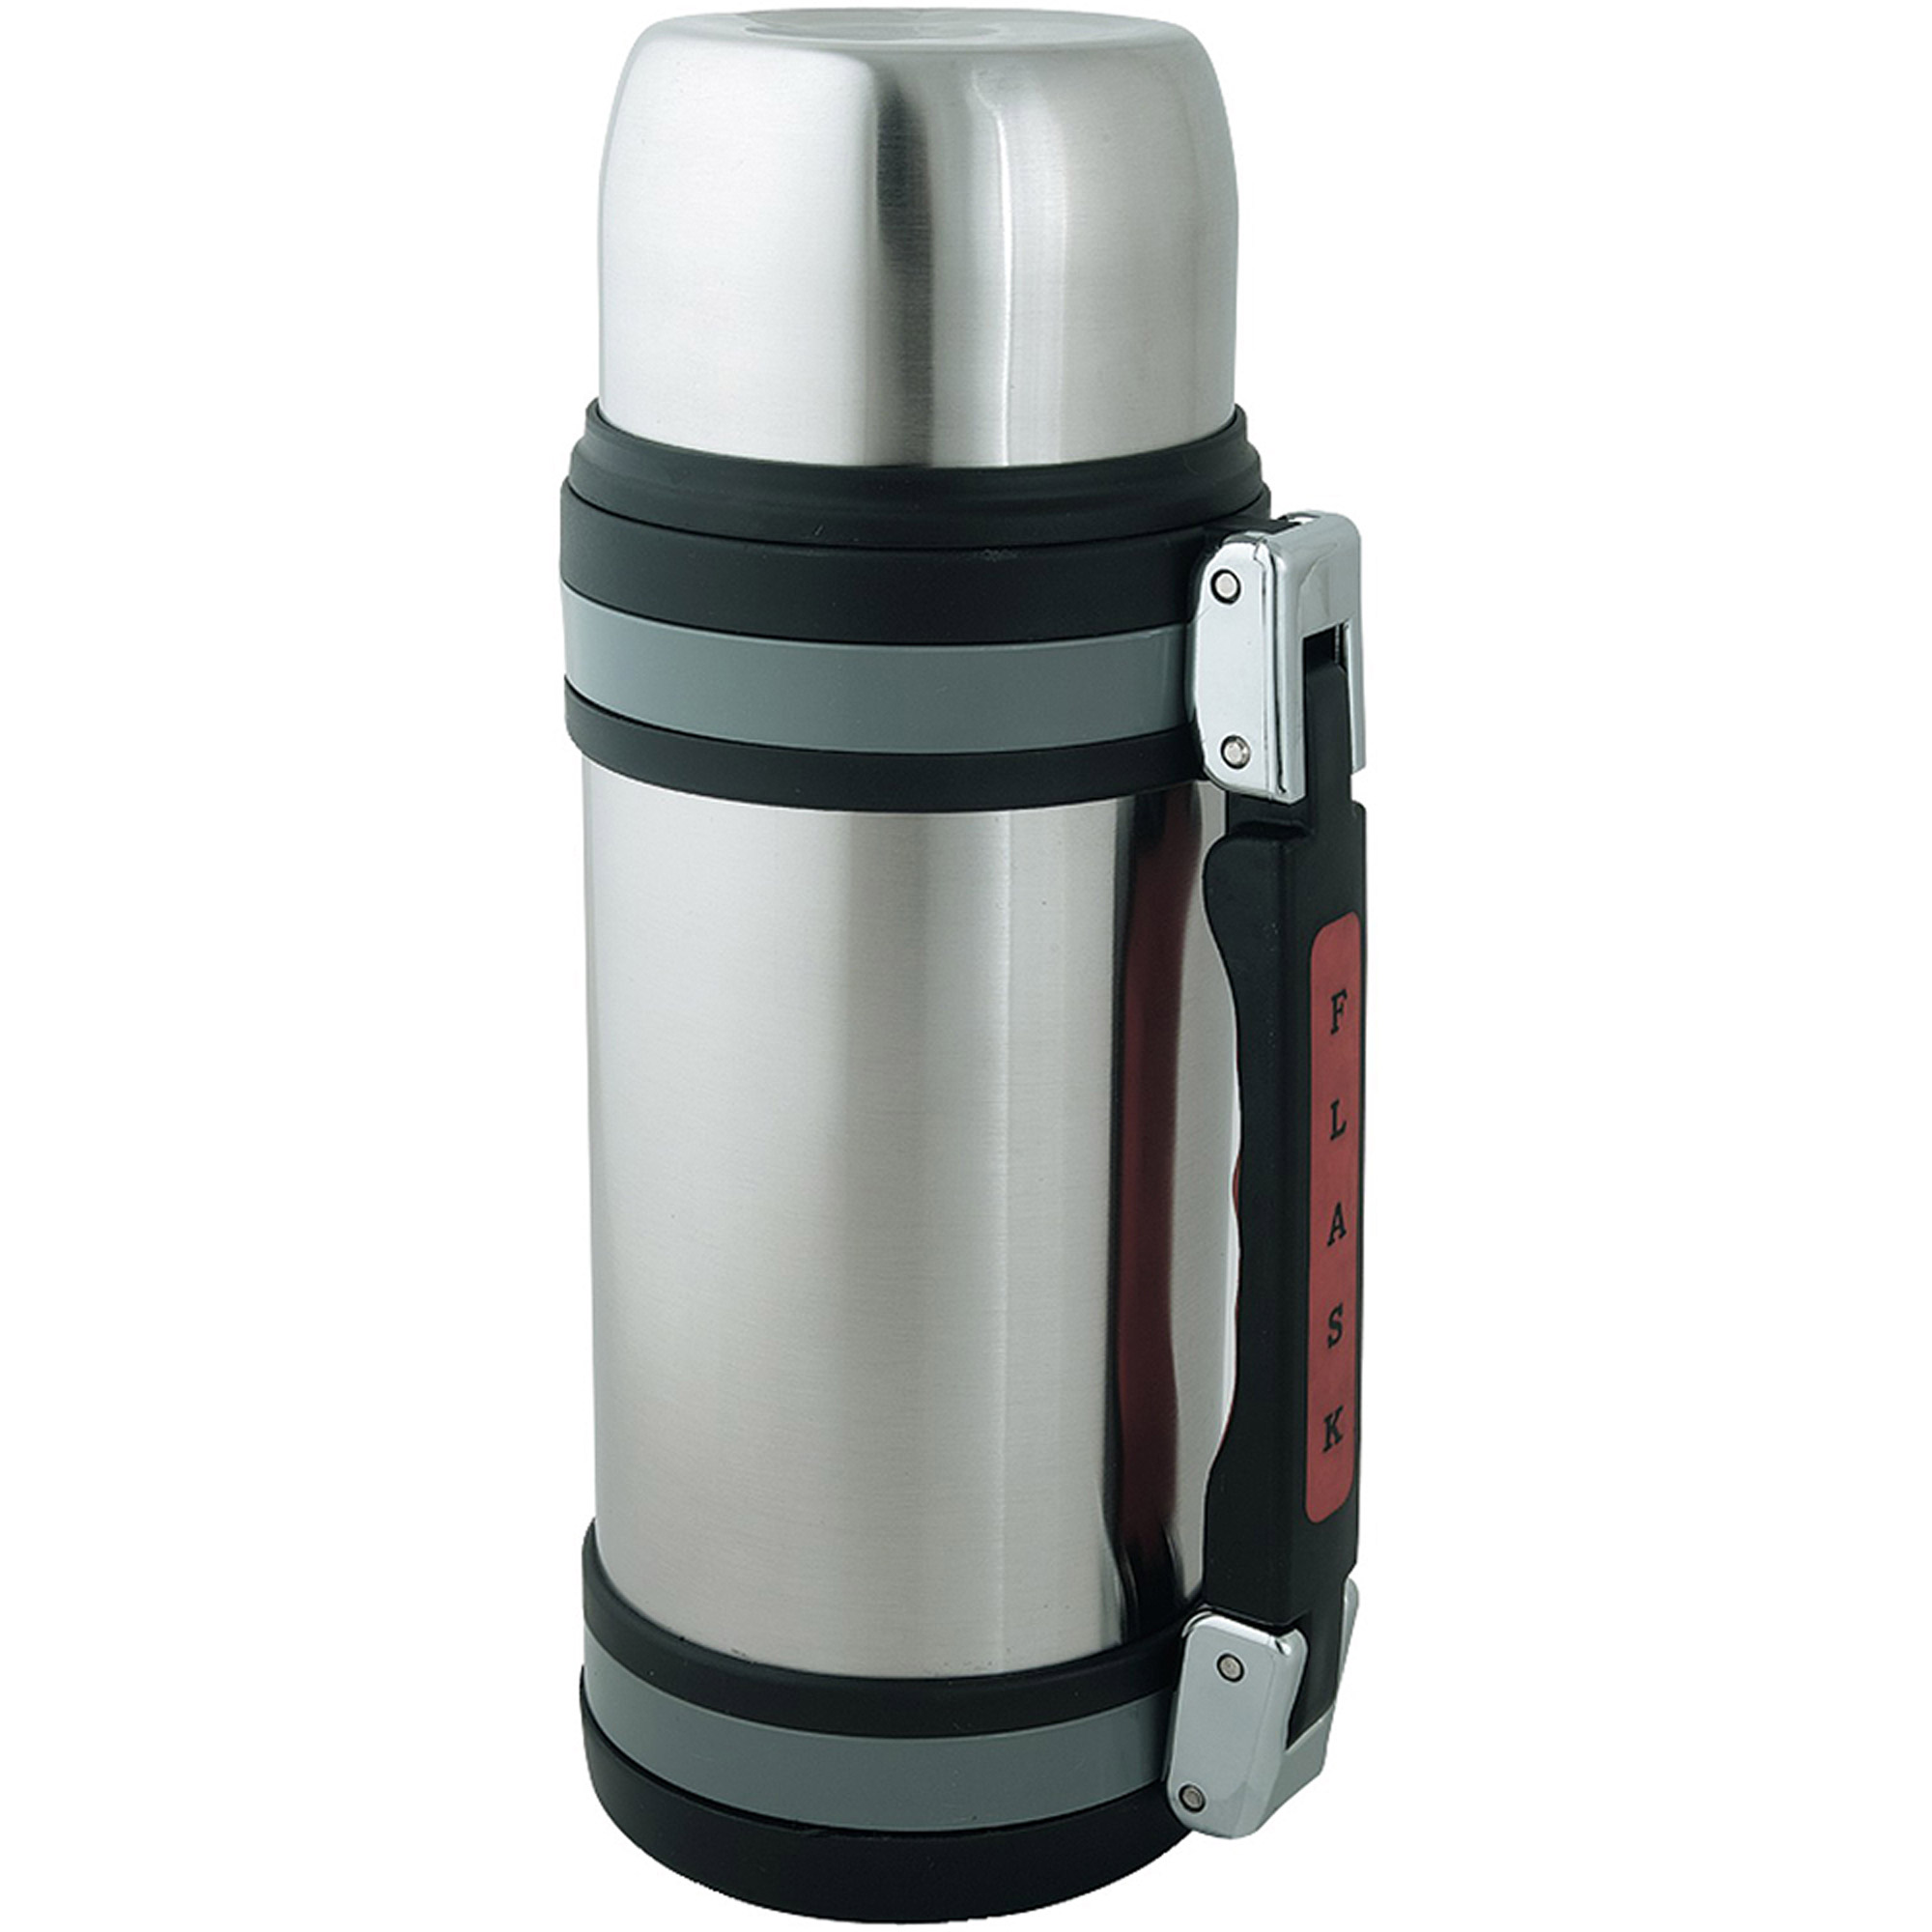 Brentwood FTS-1500 1.5-Liter Vacuum Bottle with Handle, Stainless Steel